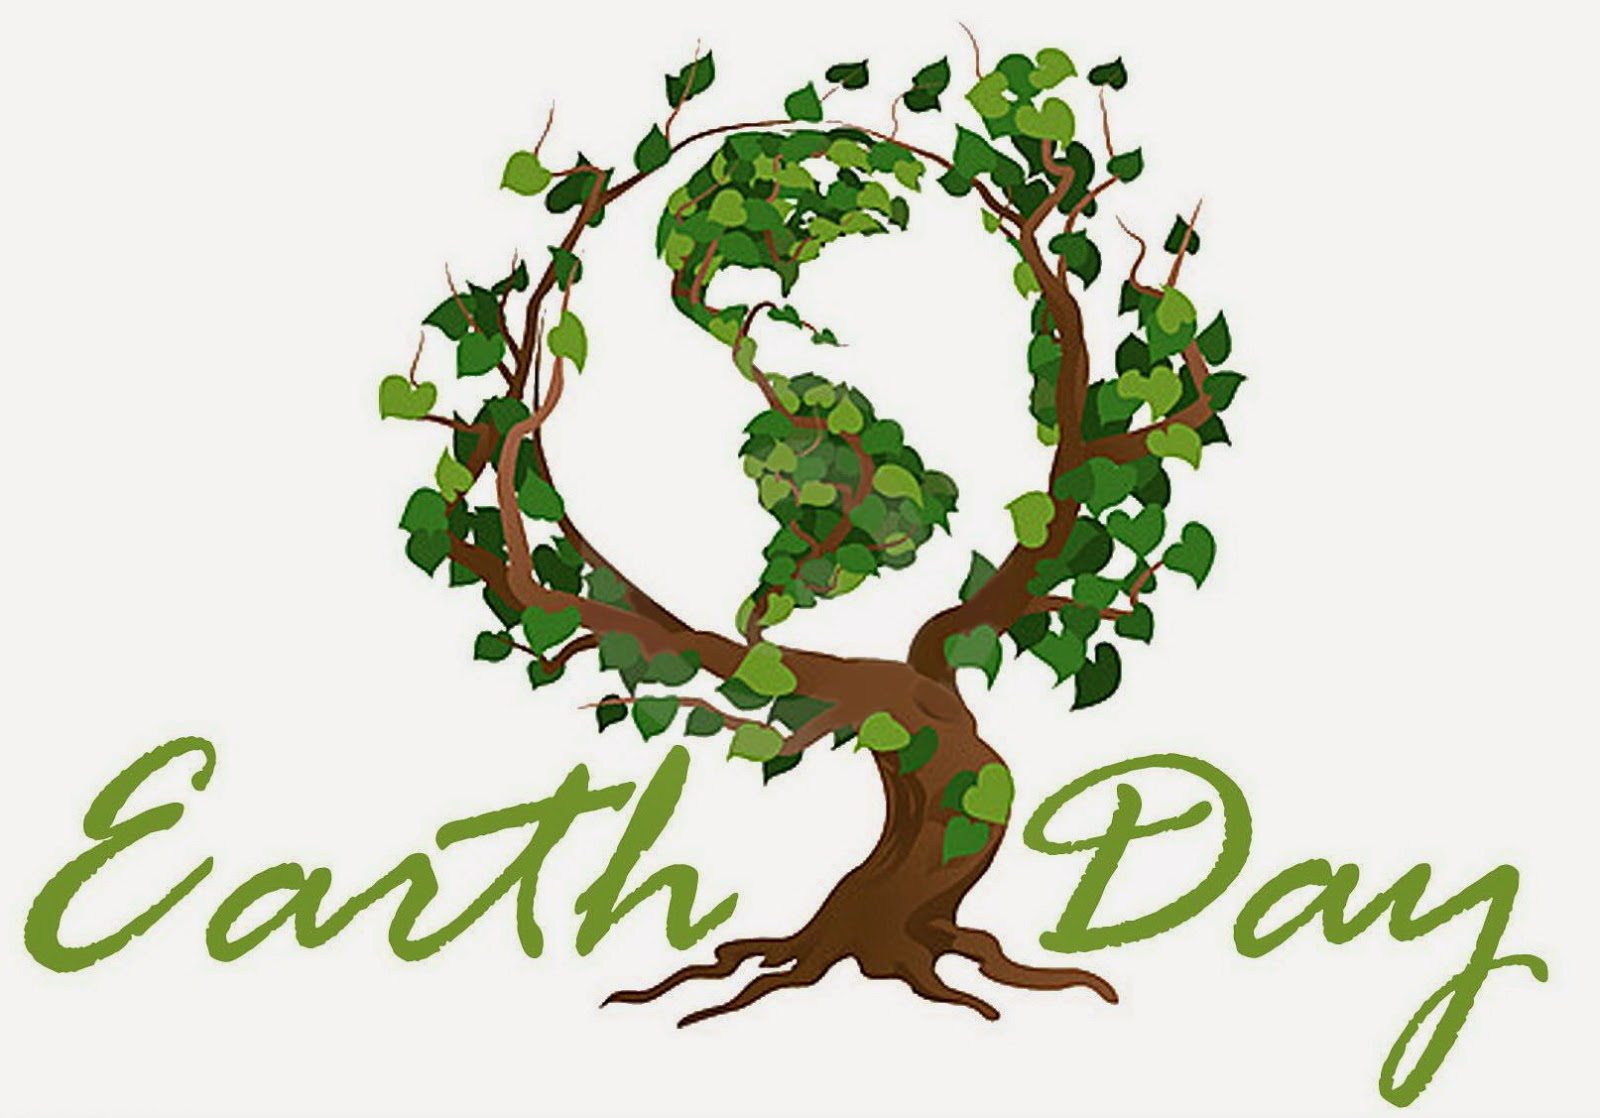 Free Earth Day 2014 Animated Clip Art Download